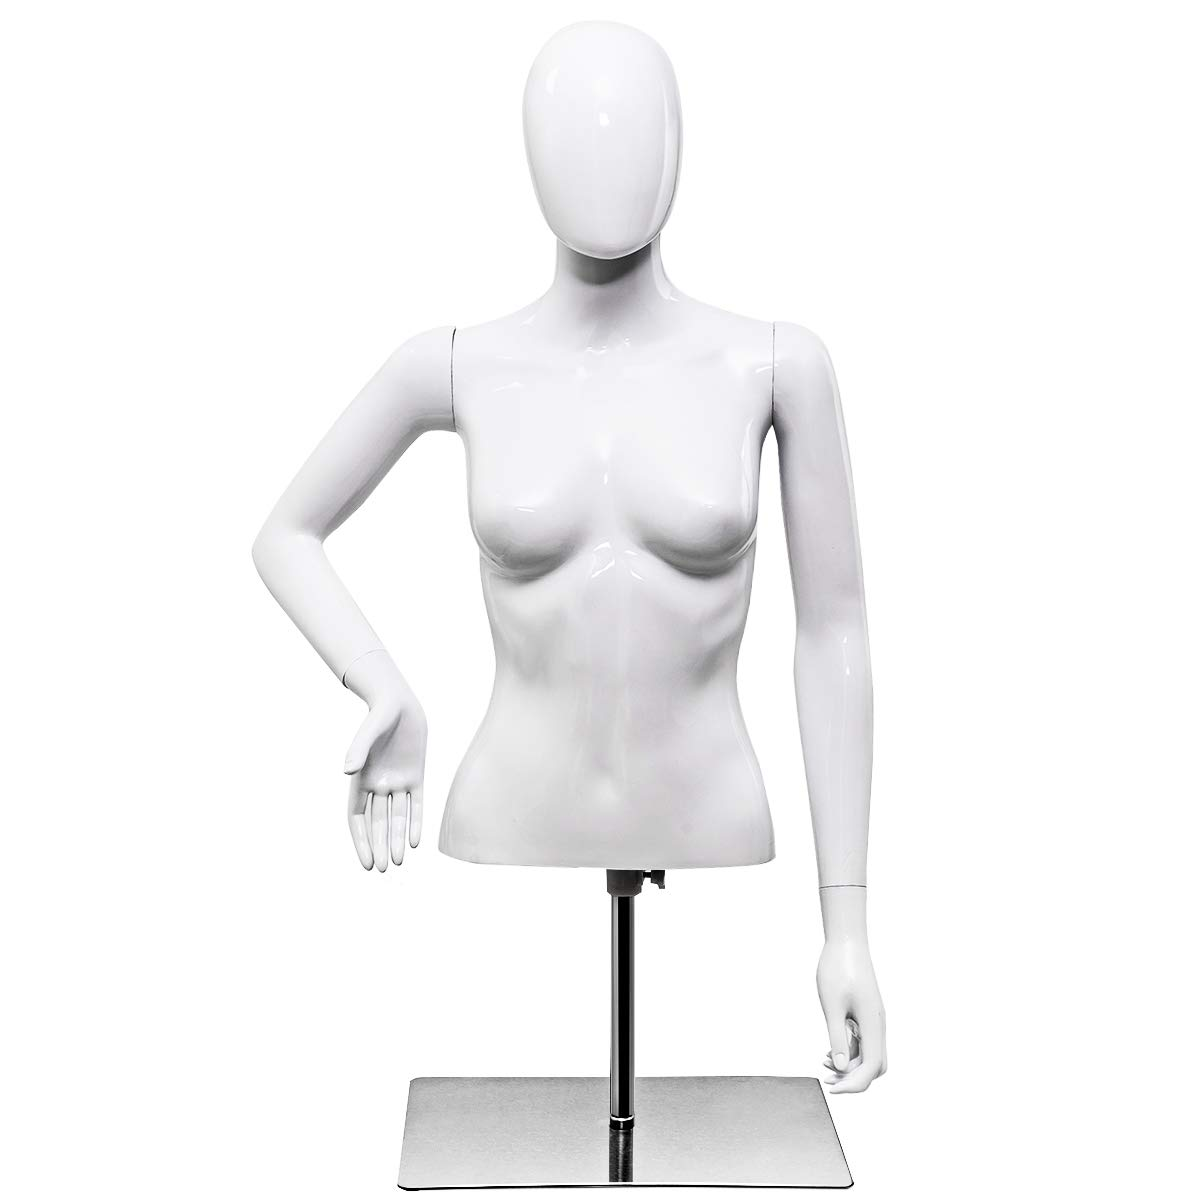 Giantex Female Half Body Mannequin Torso Dress Form Clothing Display Adjust Height & Arms with Base, Bright White by Giantex